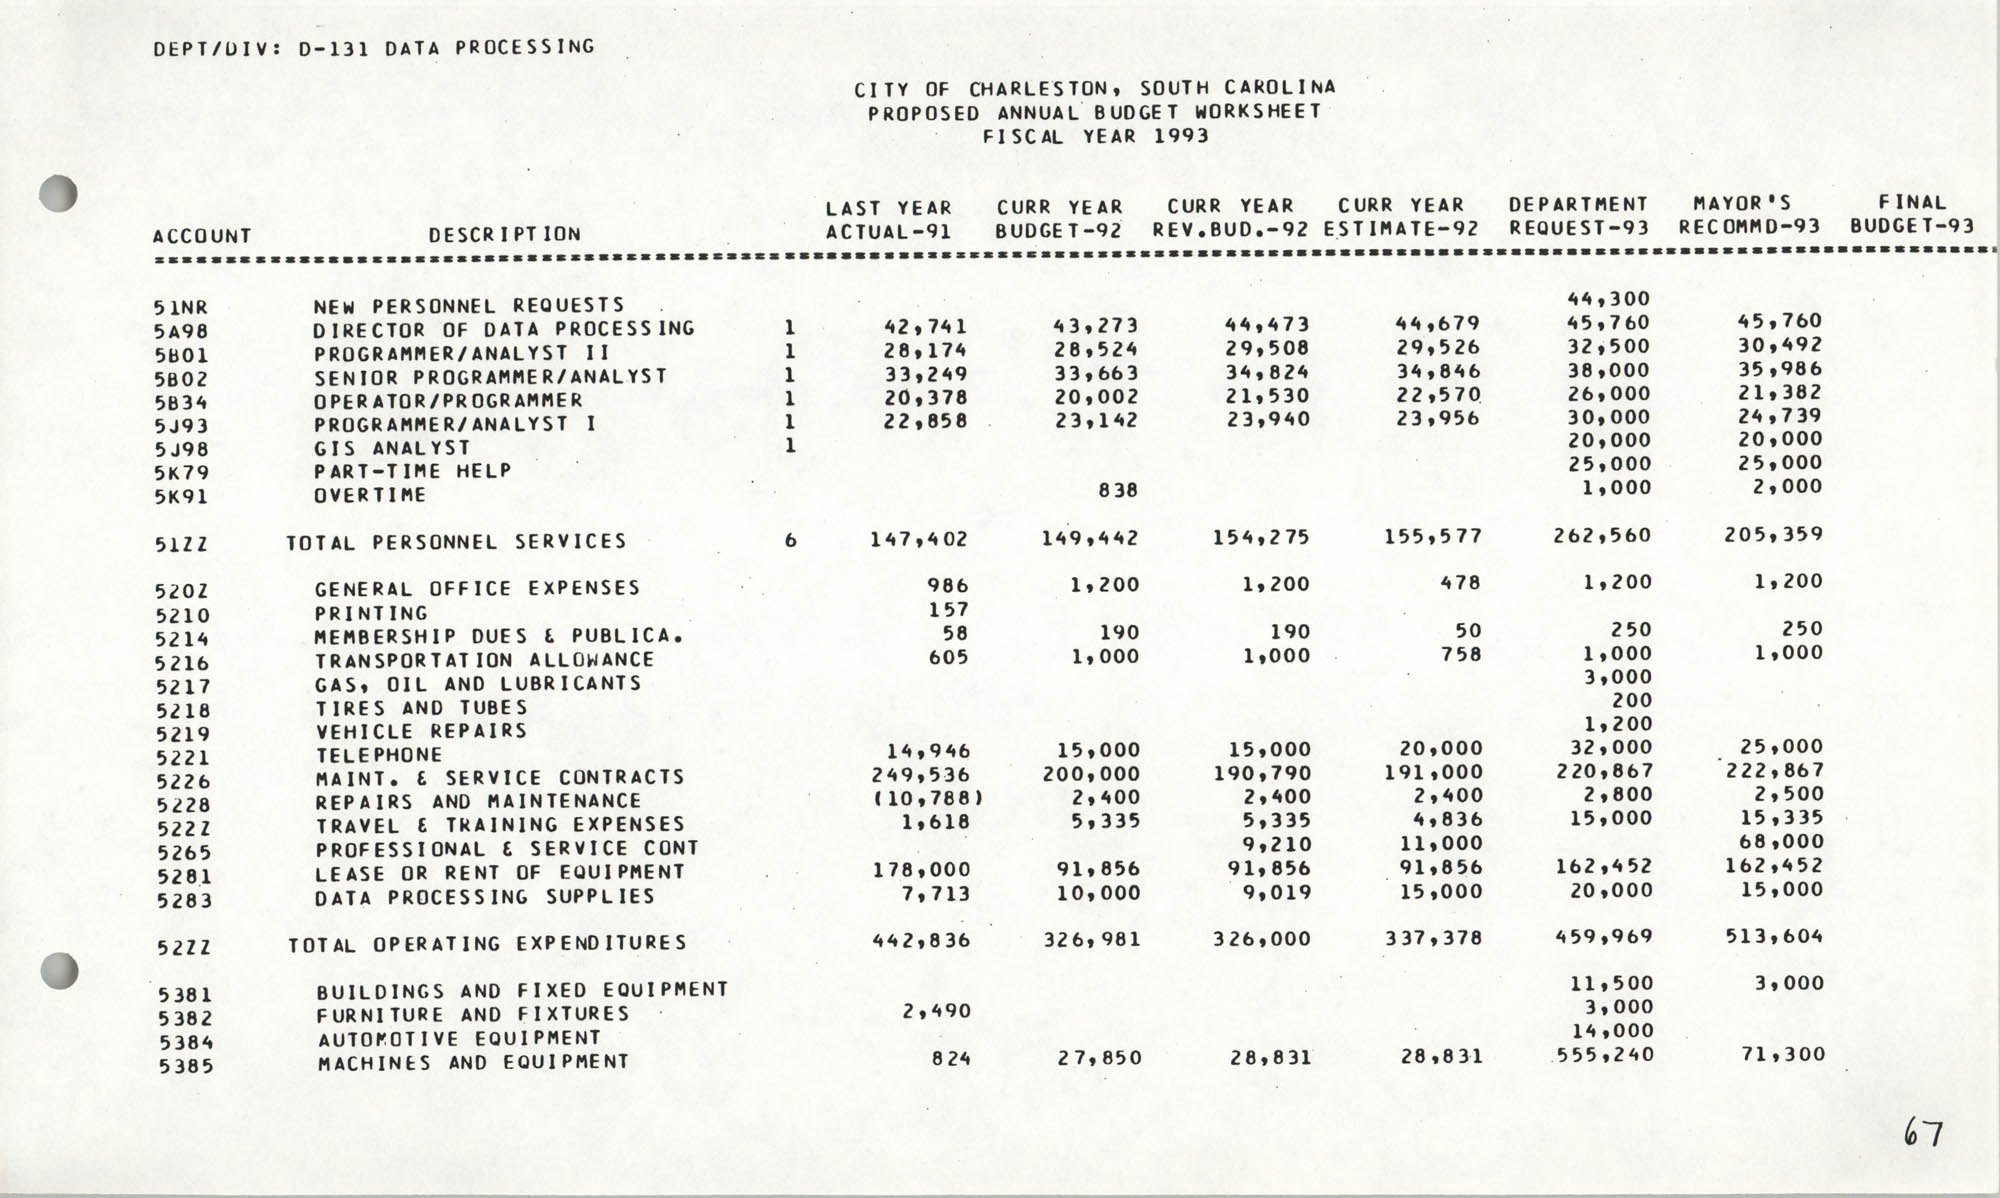 The City Council of Charleston, South Carolina, 1993 Budget, Page 67